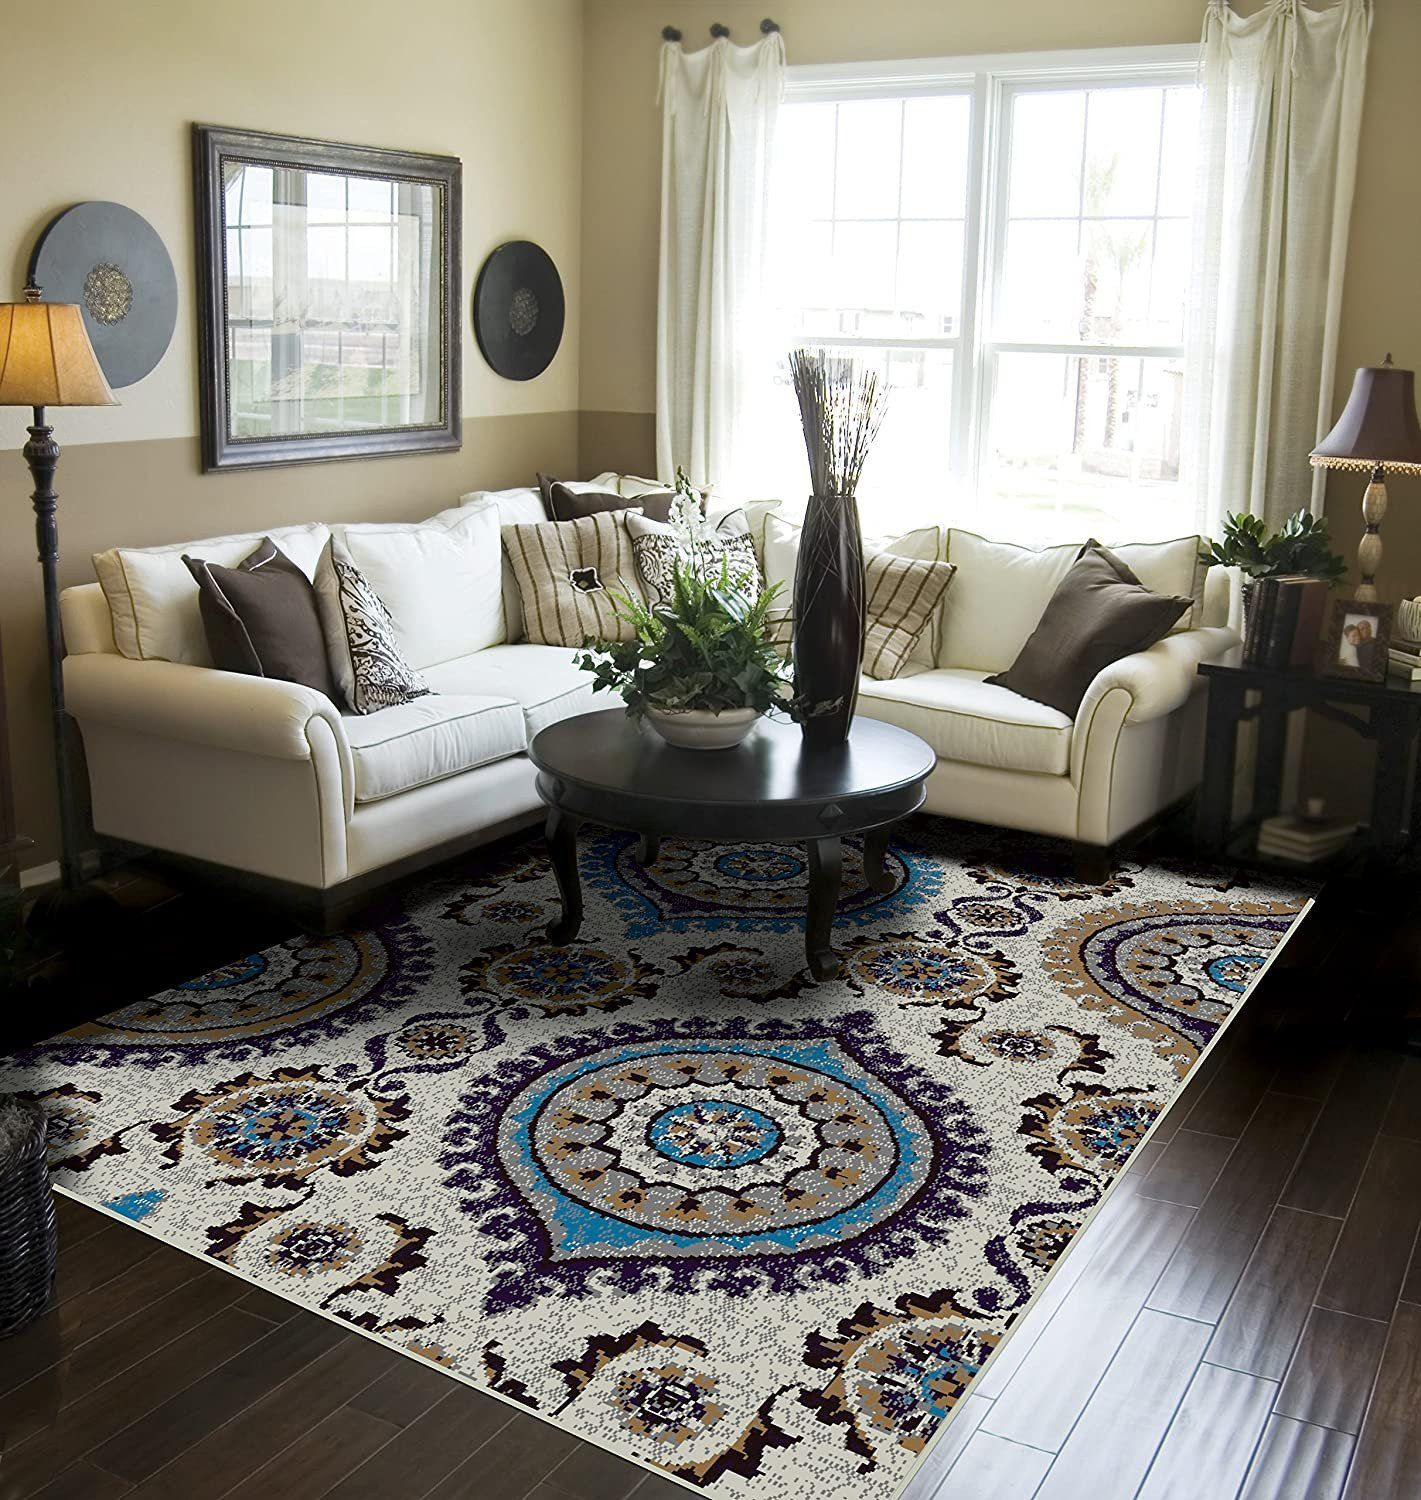 Blue Rug In Living Room Amazon Blue Rugs for Living Room ...